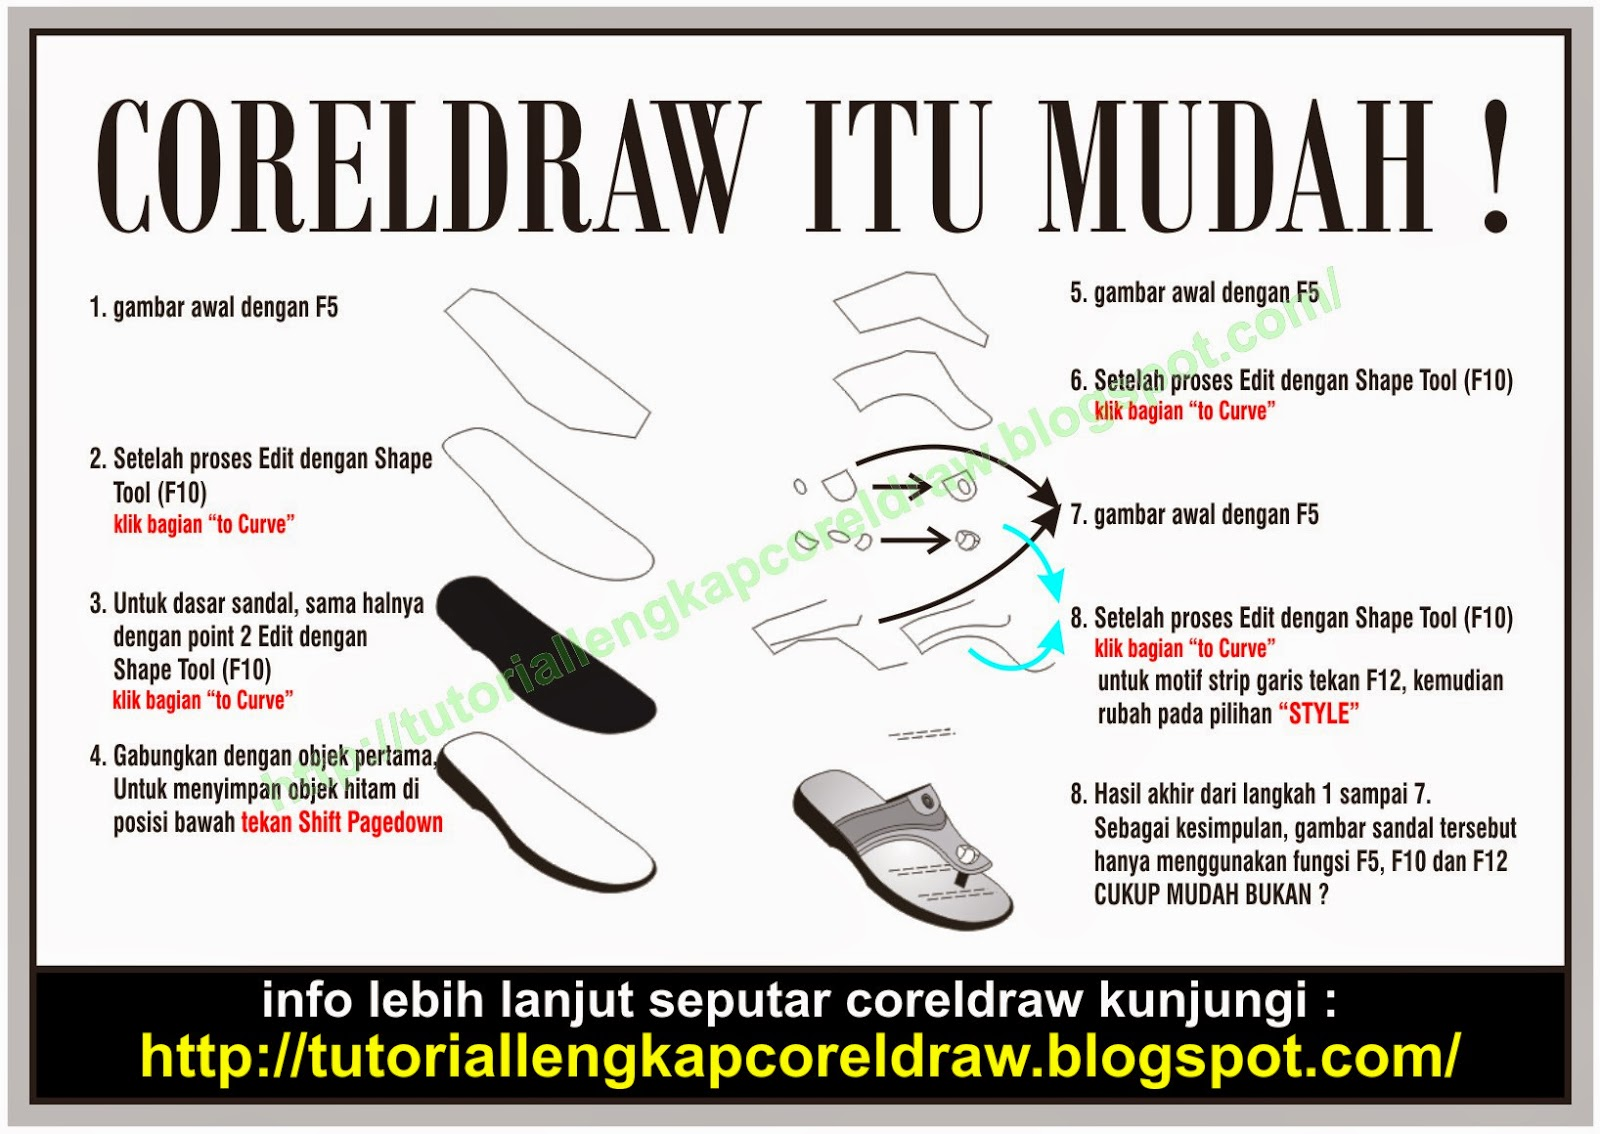 tutorial corel draw, http://tutoriallengkapcoreldraw.blogspot.com/